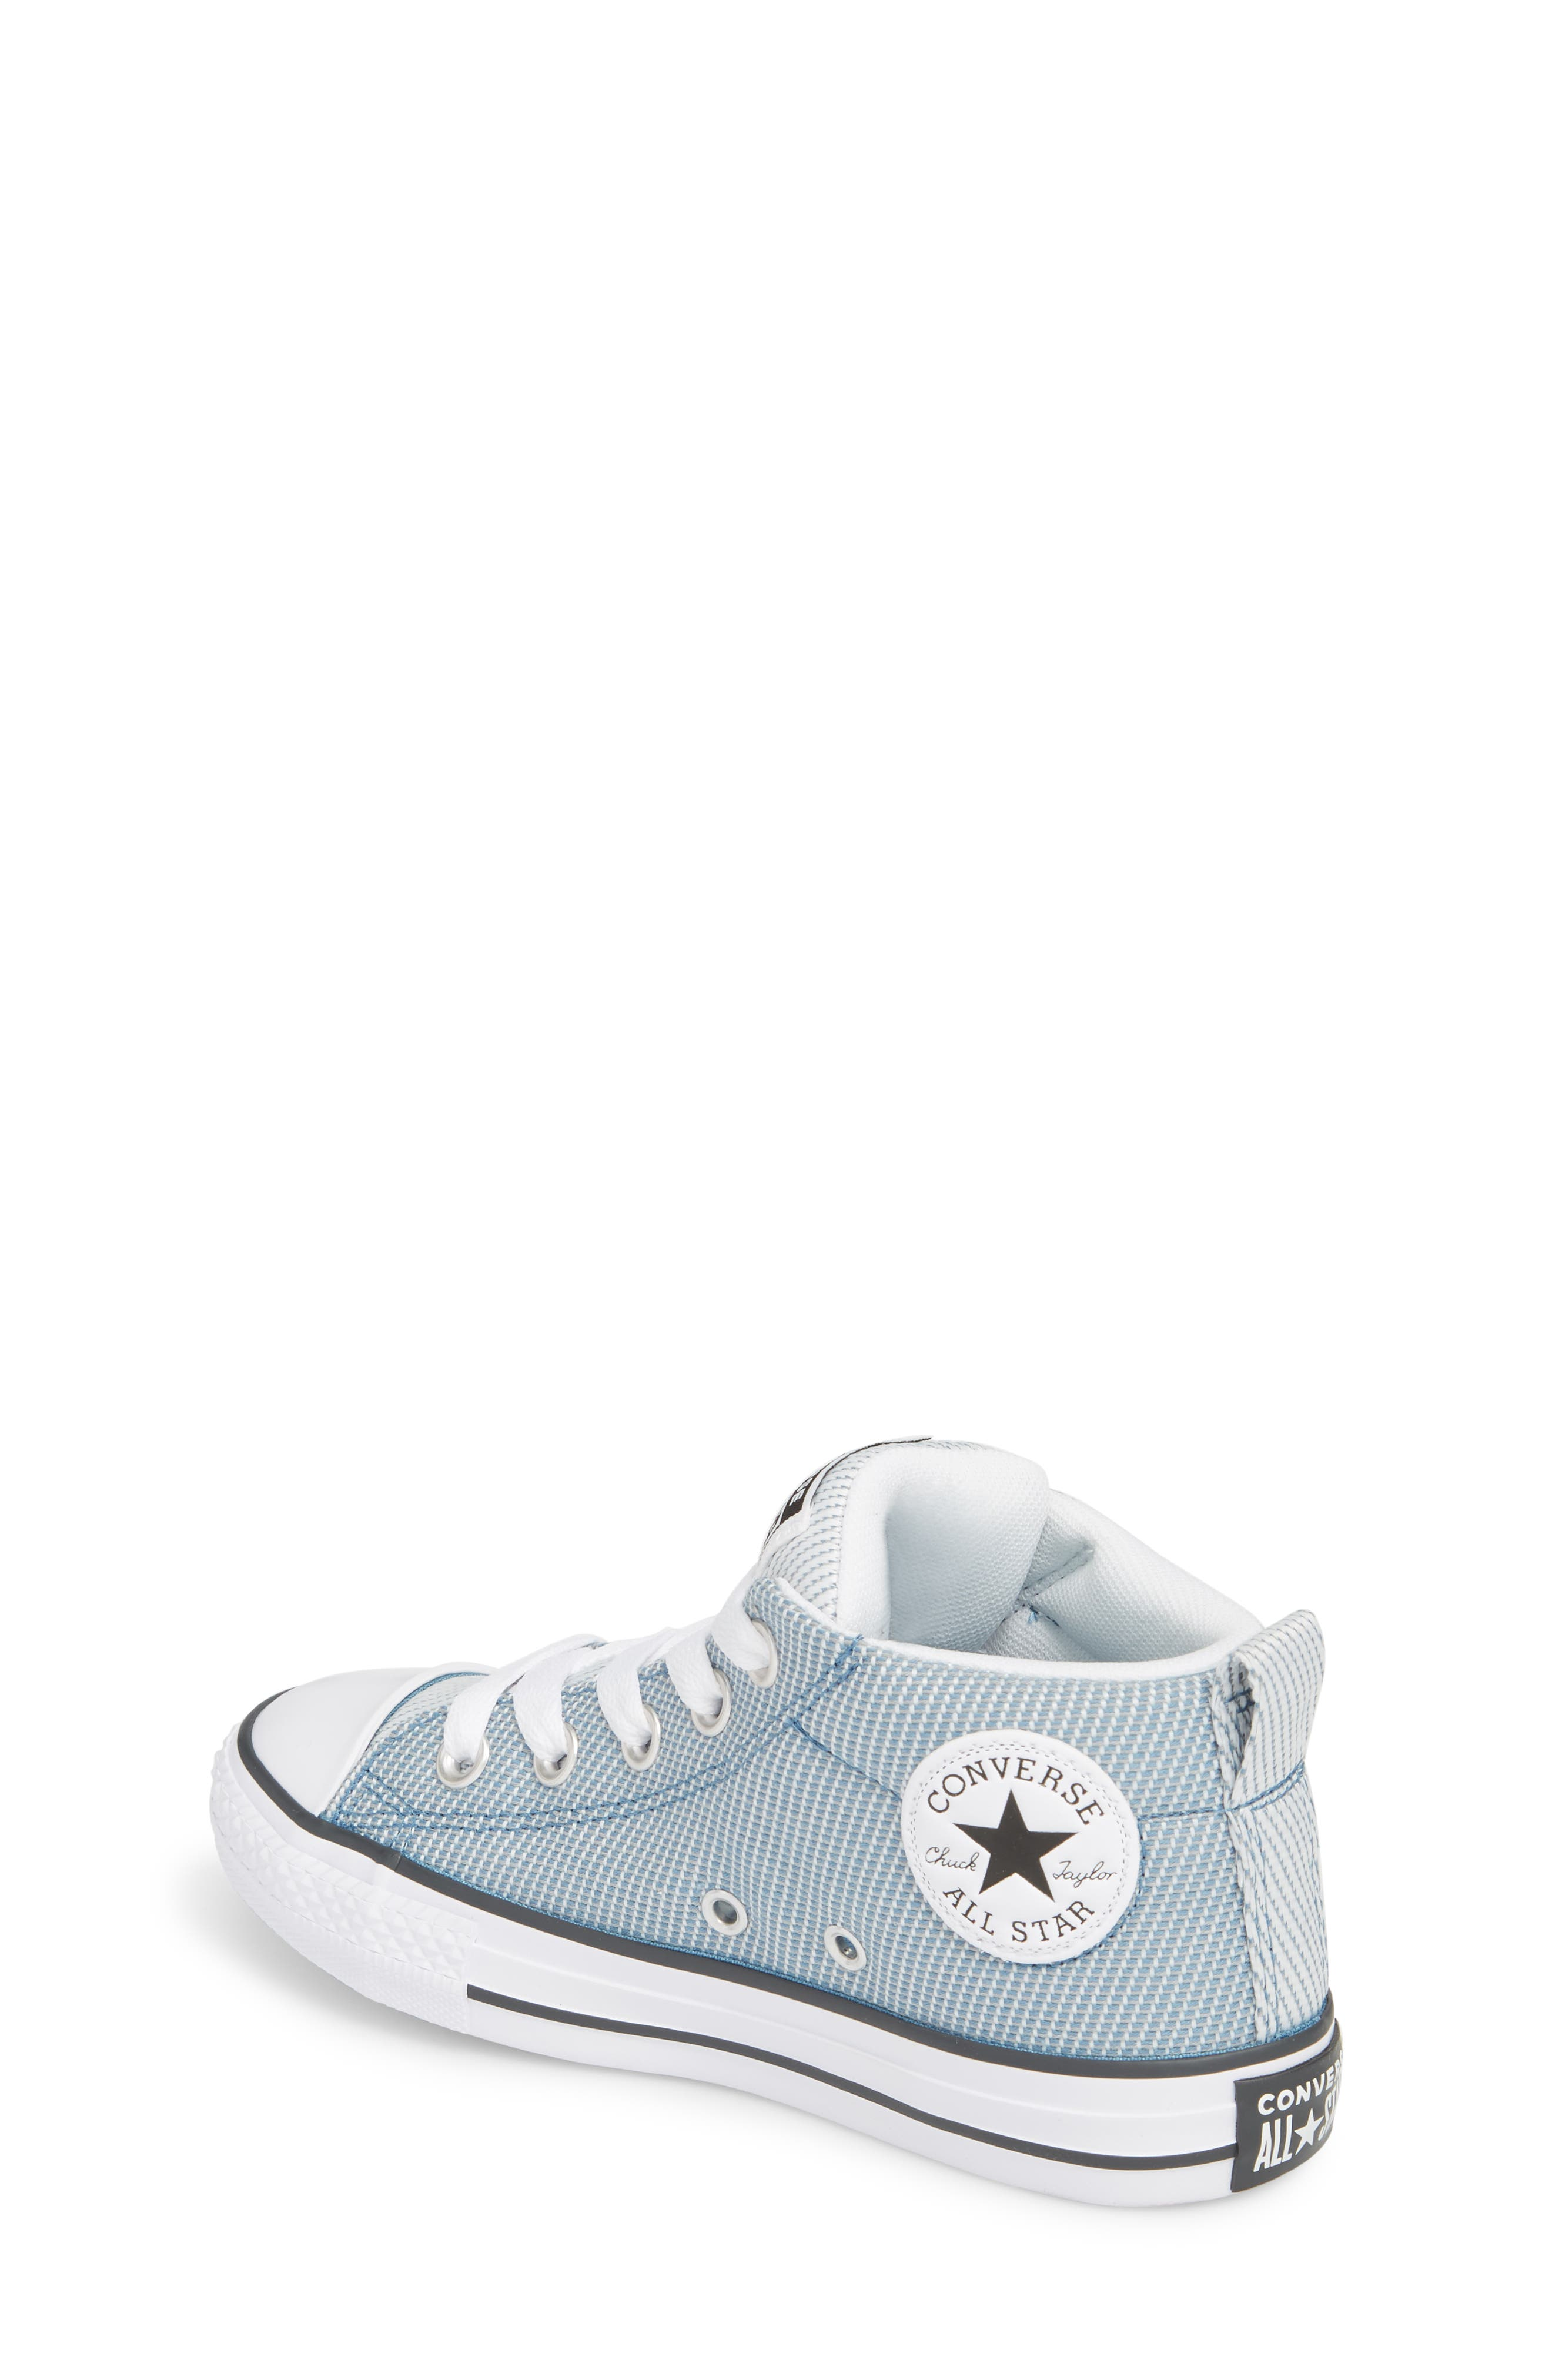 Chuck Taylor<sup>®</sup> All Star<sup>®</sup> Woven Street Mid Sneaker,                             Alternate thumbnail 2, color,                             Aegean Storm